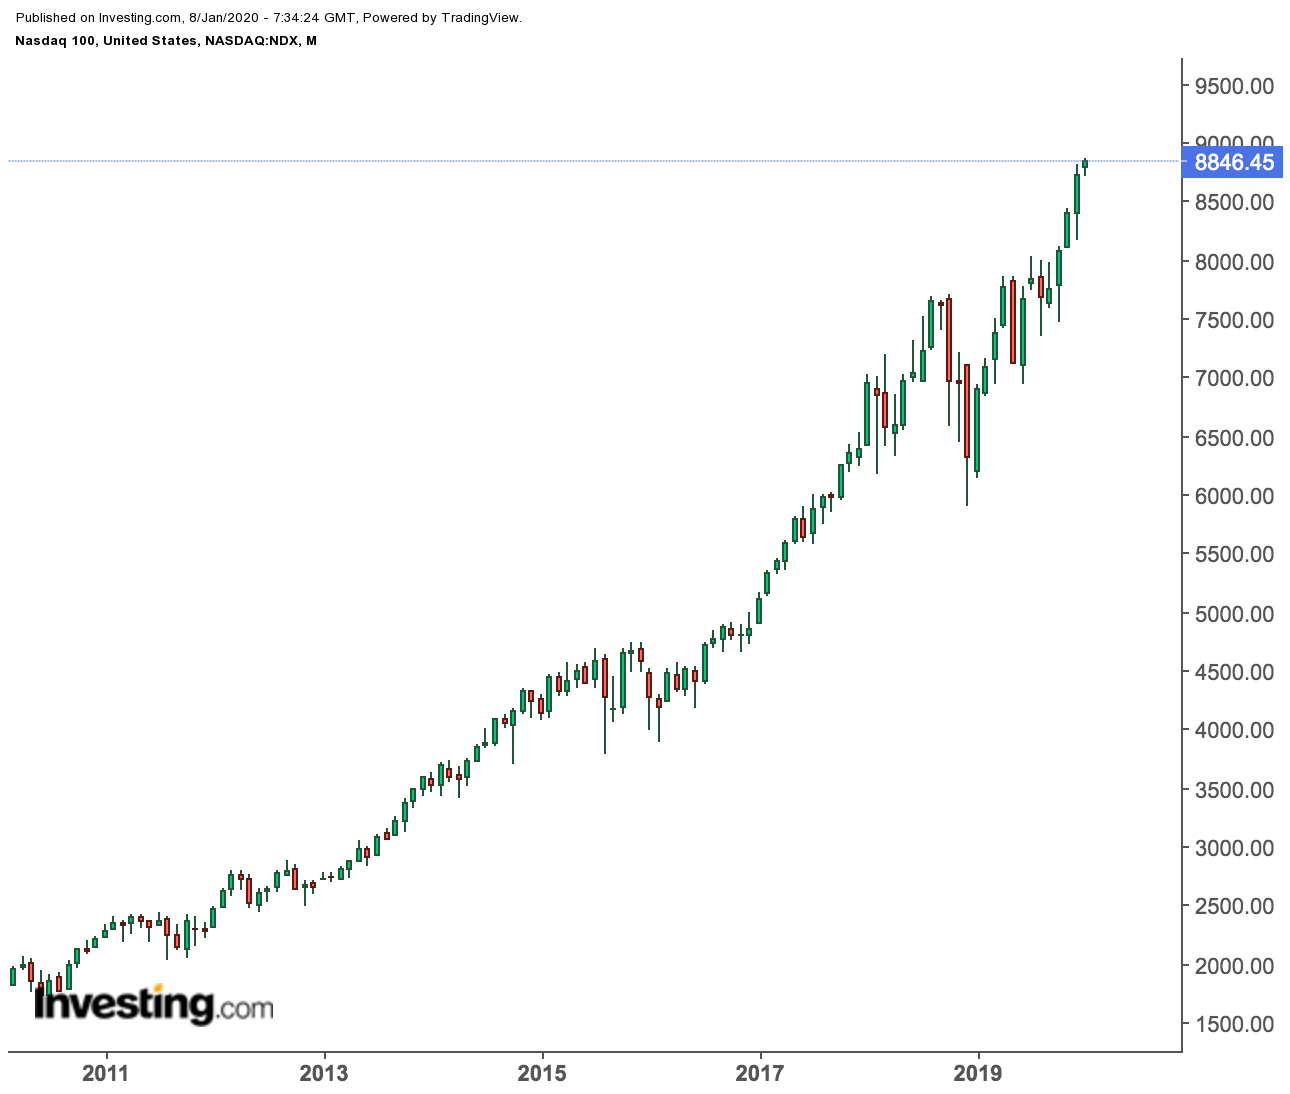 Nasdaq 100 Monthly Price Chart